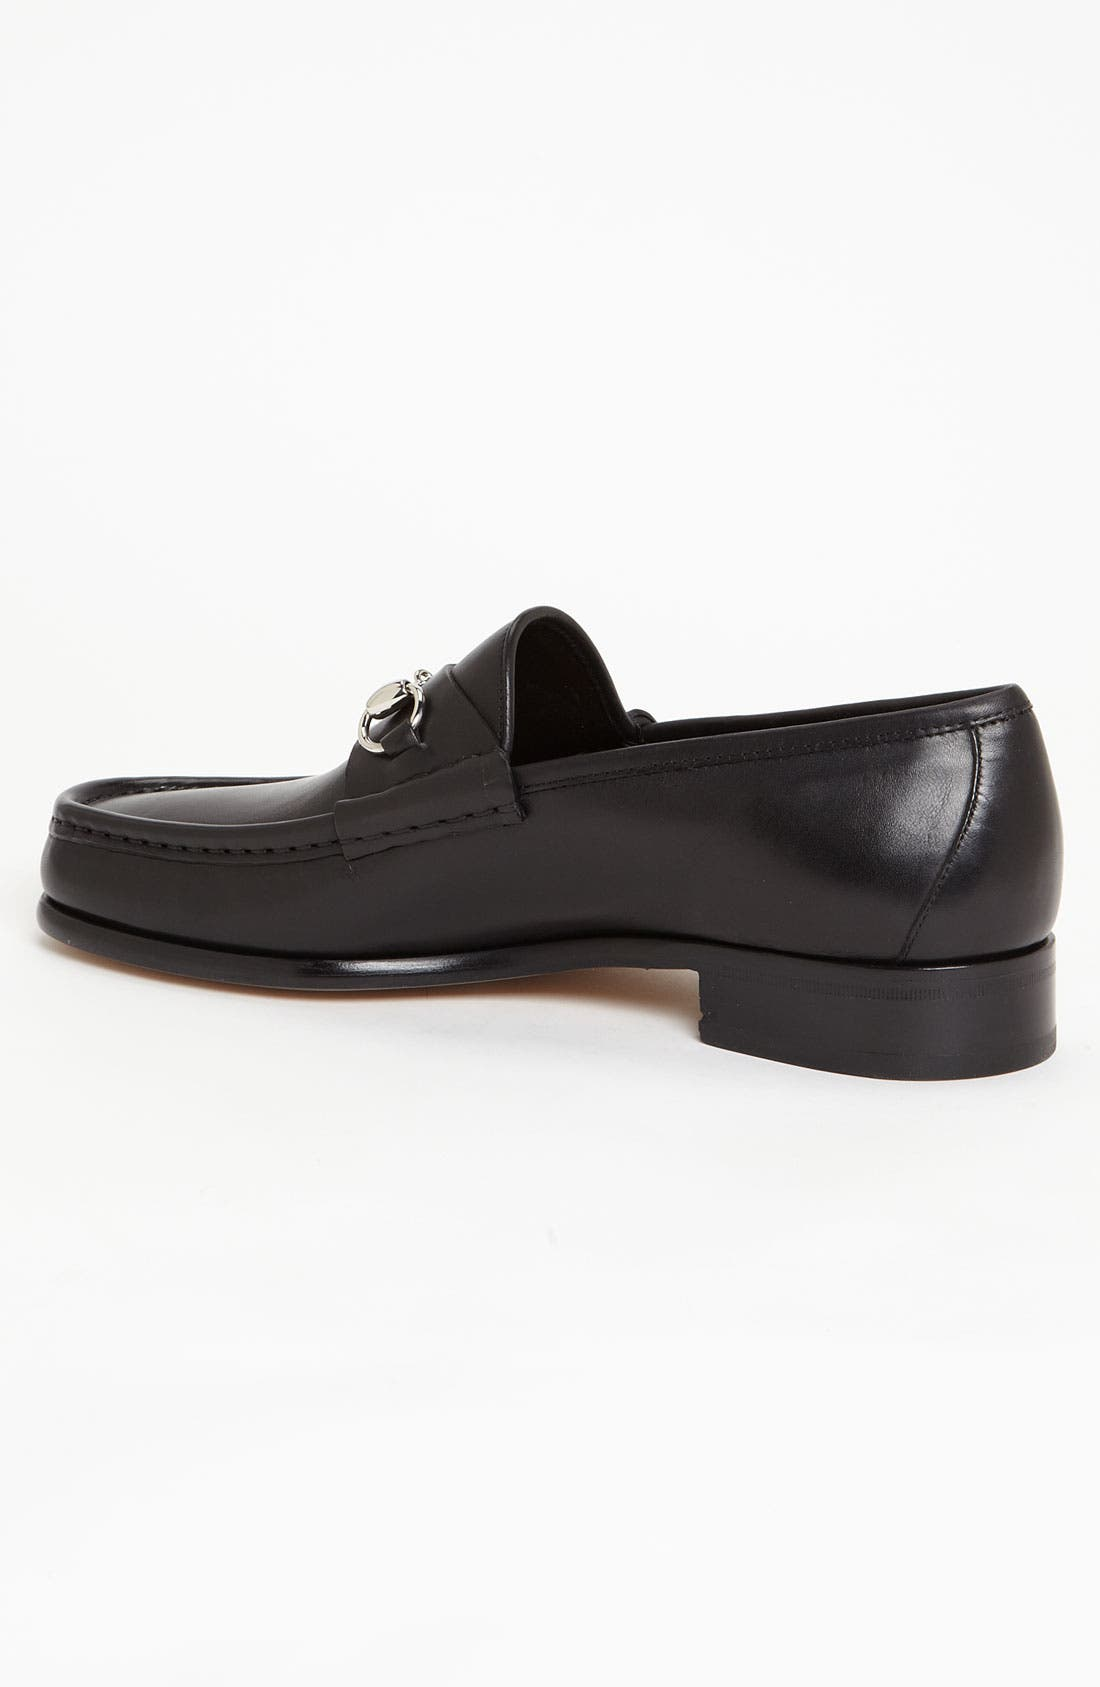 Alternate Image 2  - Gucci Classic Leather Moccasin